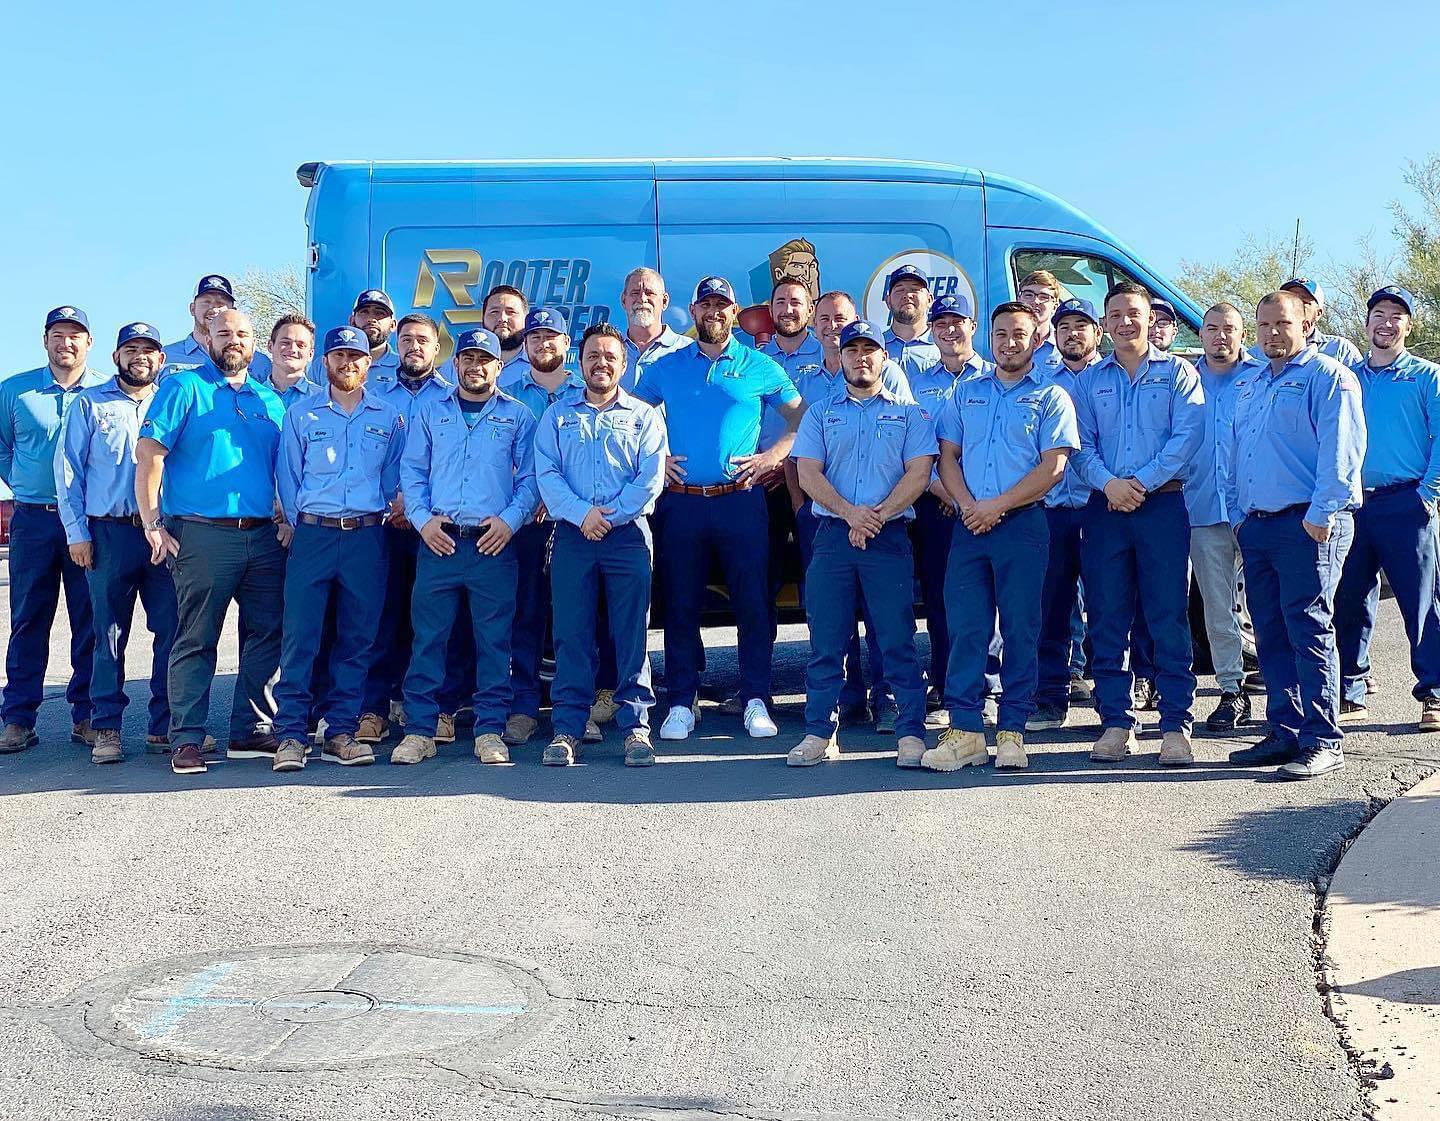 Rooter Ranger Provides Comprehensive Cleaning, Repair, and Replacement Plumbing Services